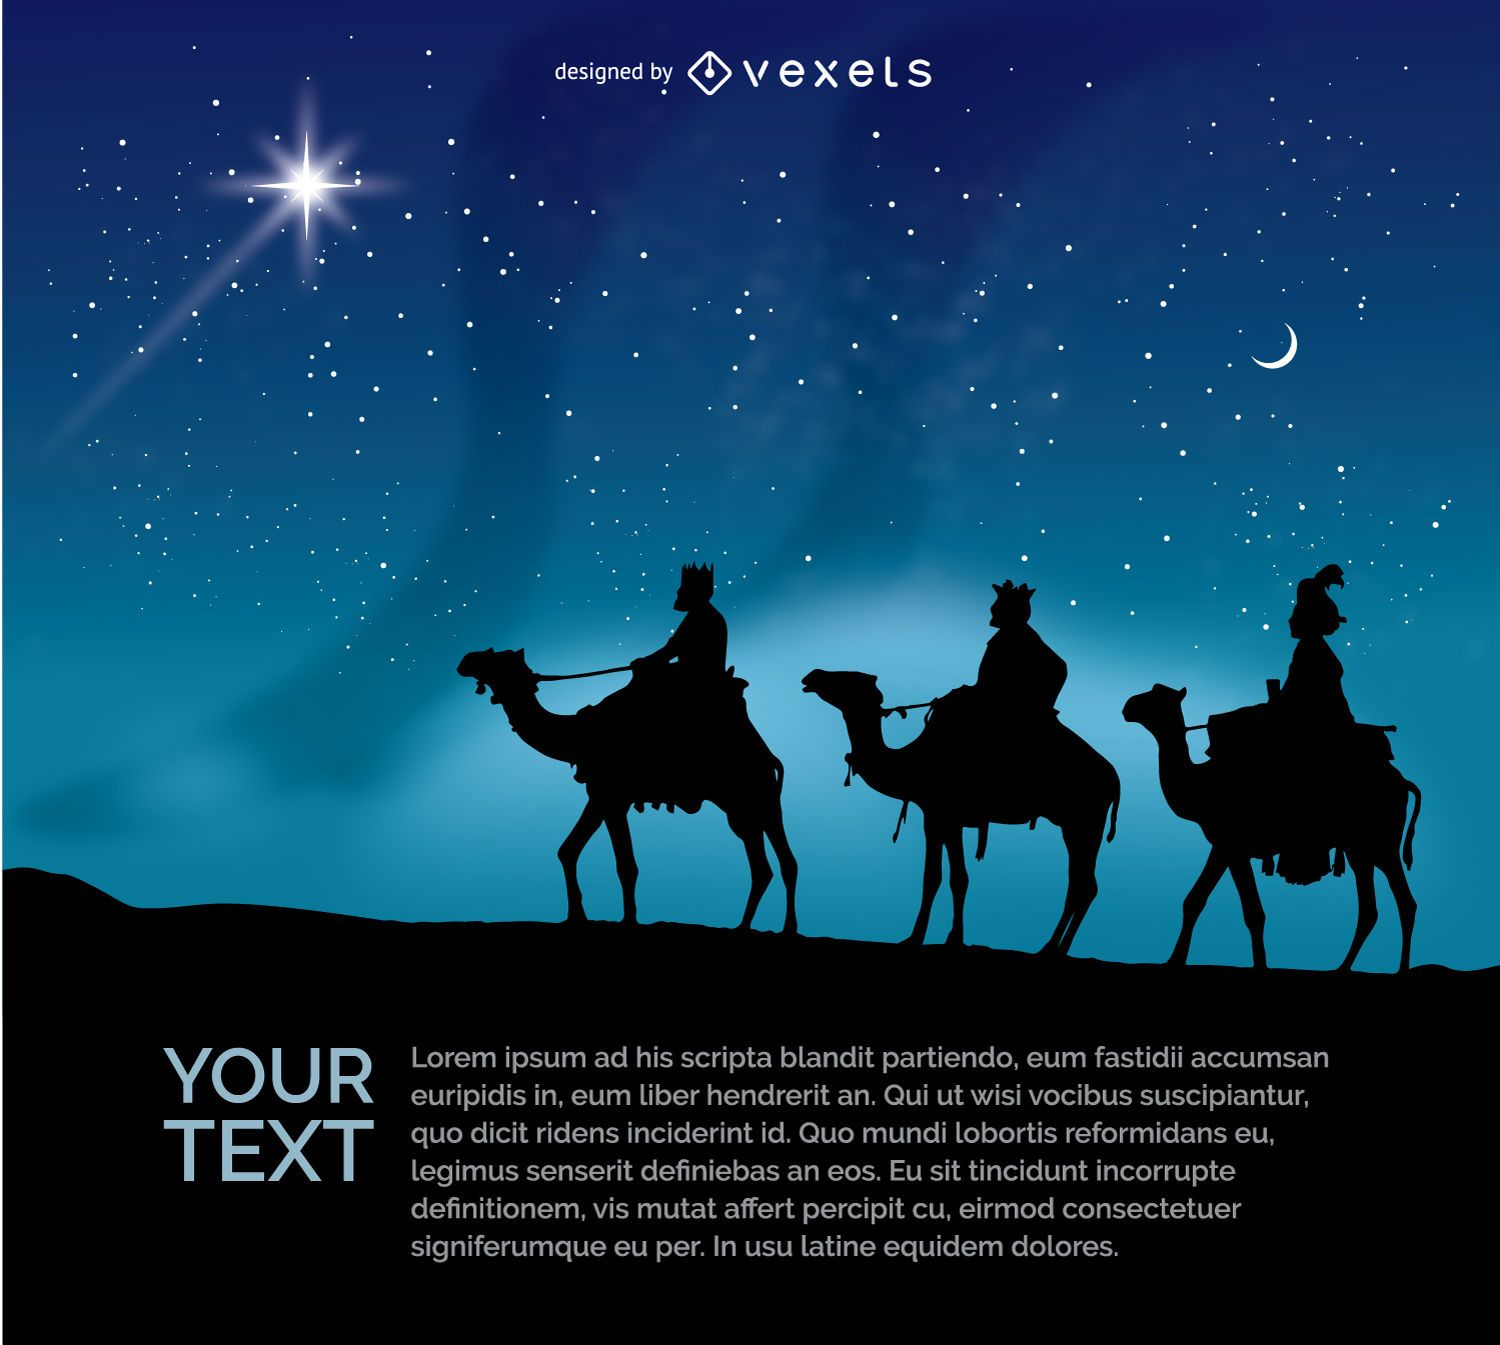 3 Wise Men Gifts For Christmas: The Three Wise Men Riding Their Camels At Night